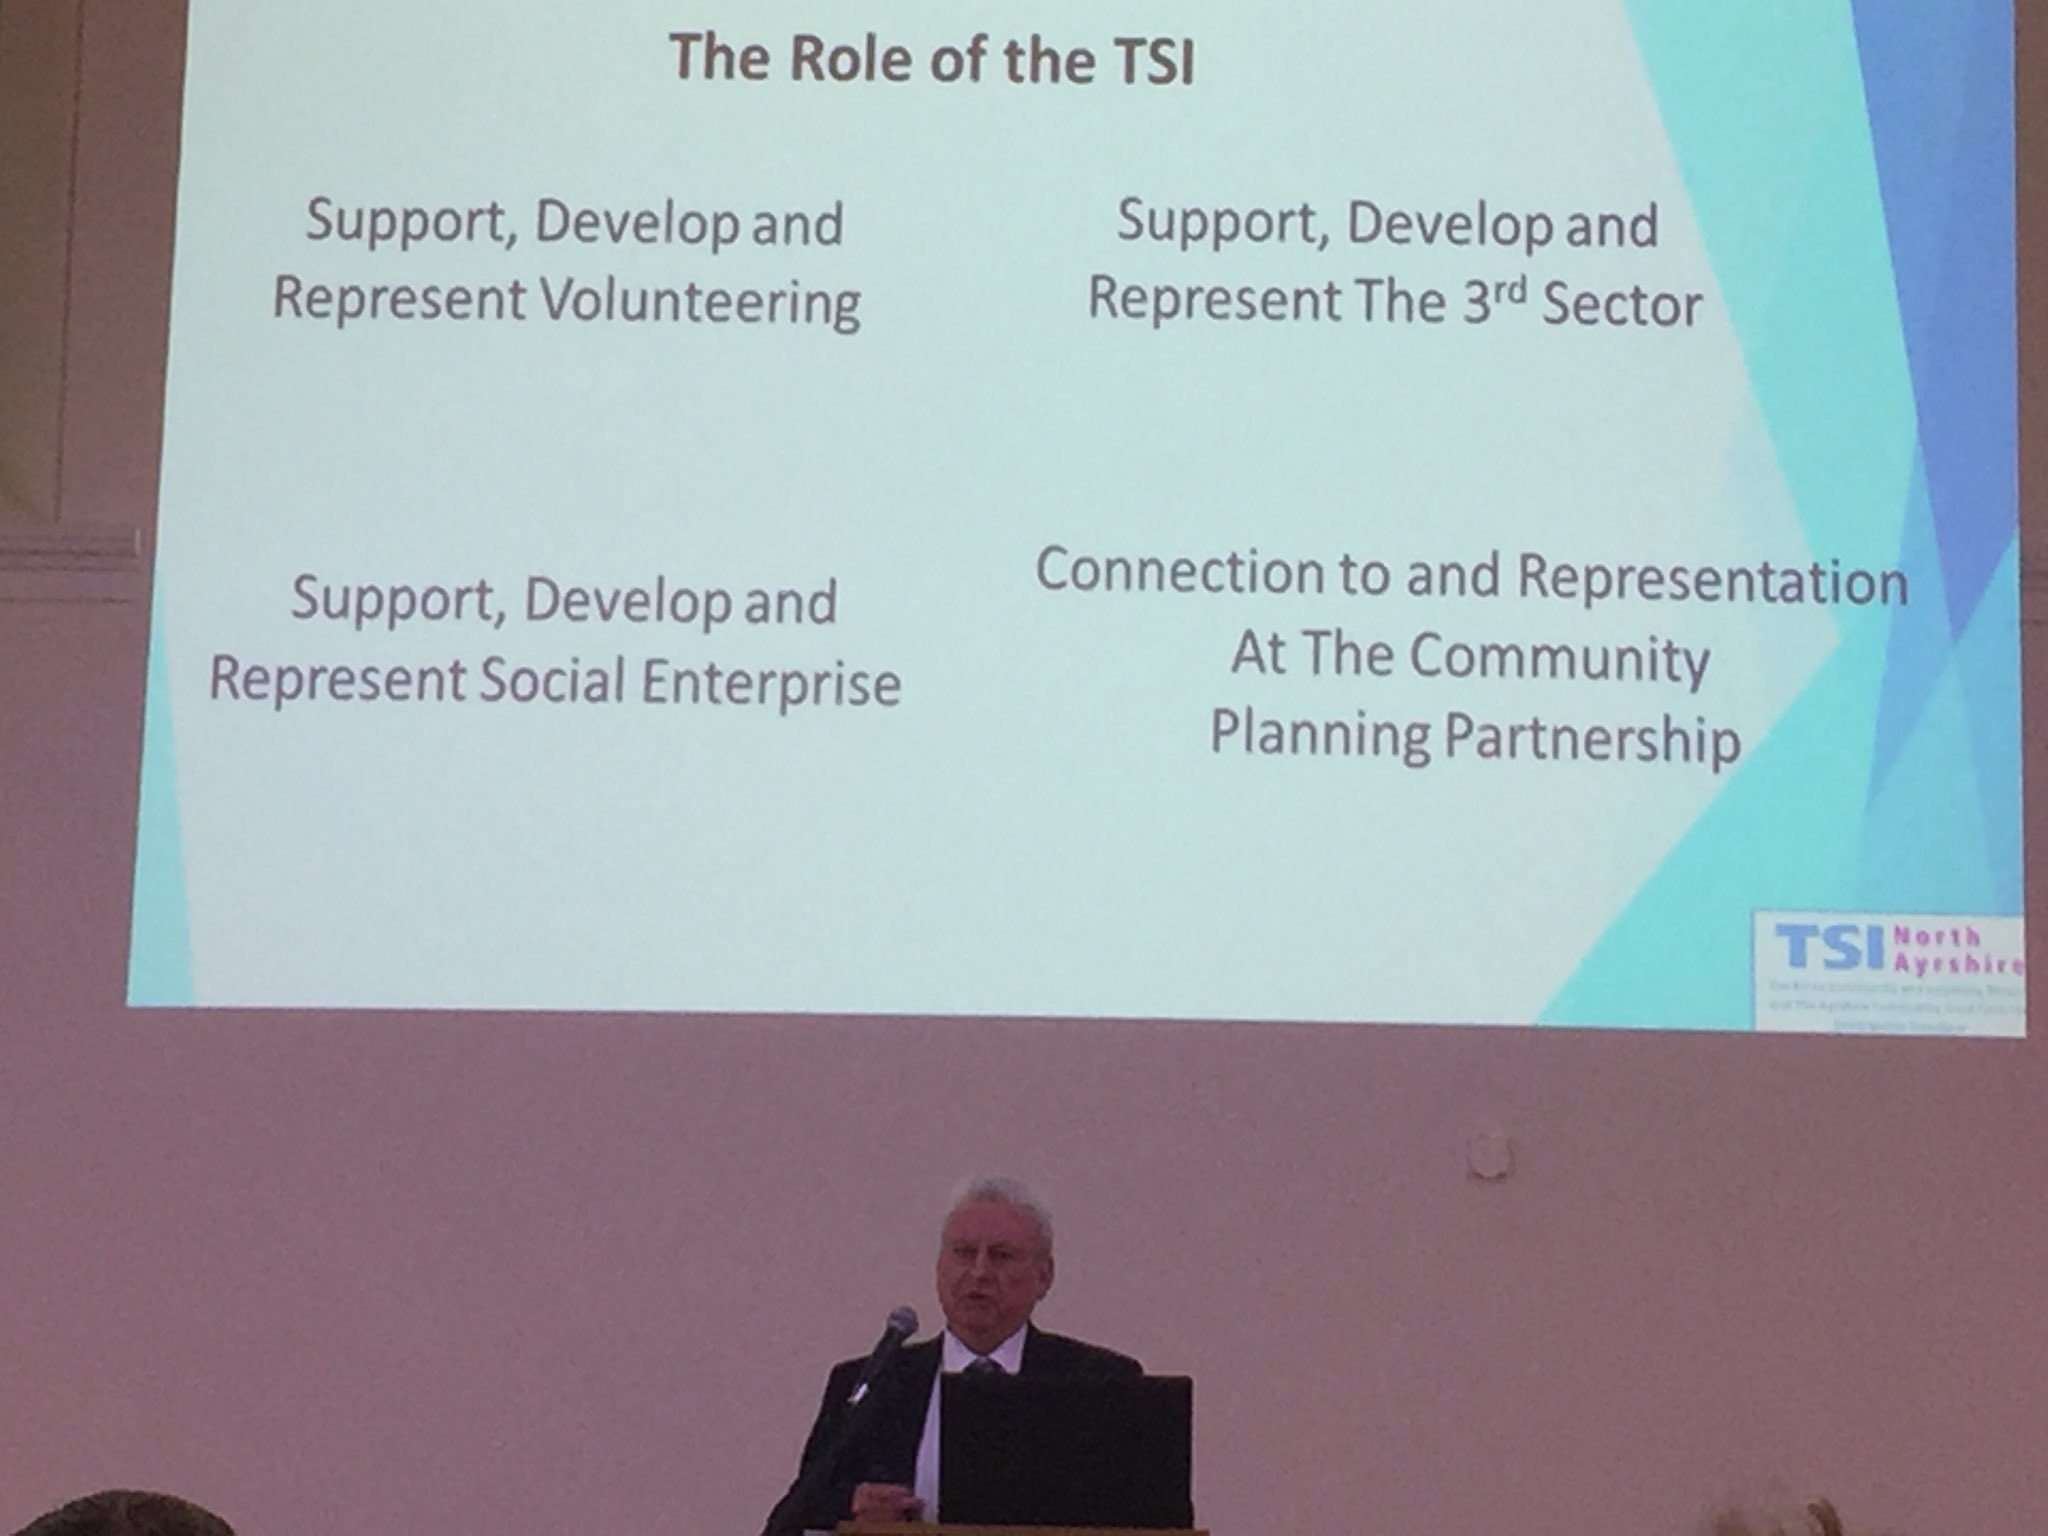 FFU Scotland enjoying partnership and third sector conference #AILIP https://t.co/1PtNAzcJF5